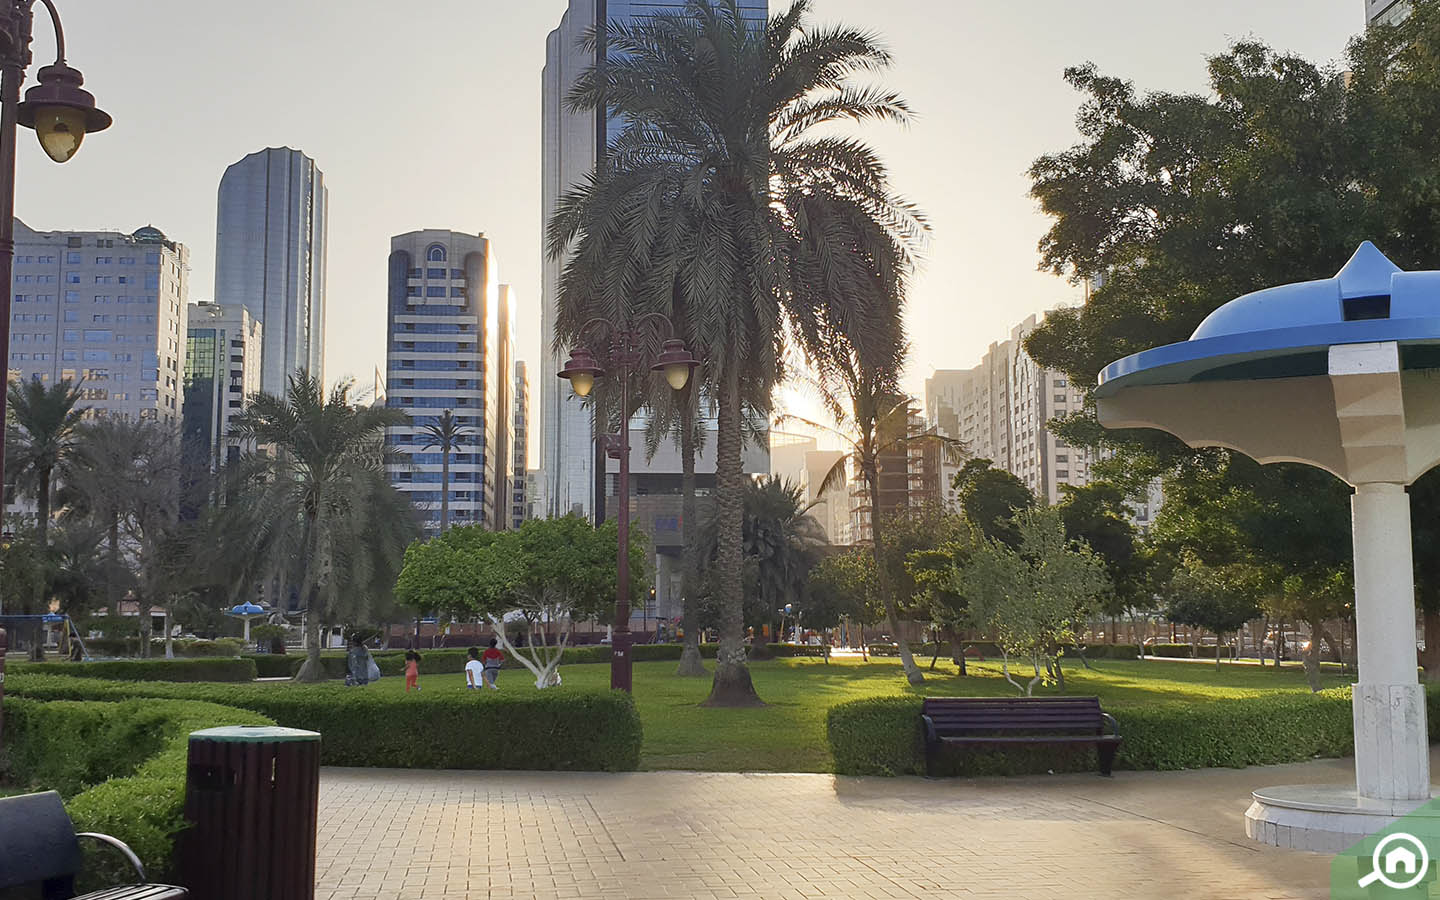 One of the parks in Abu Dhabi